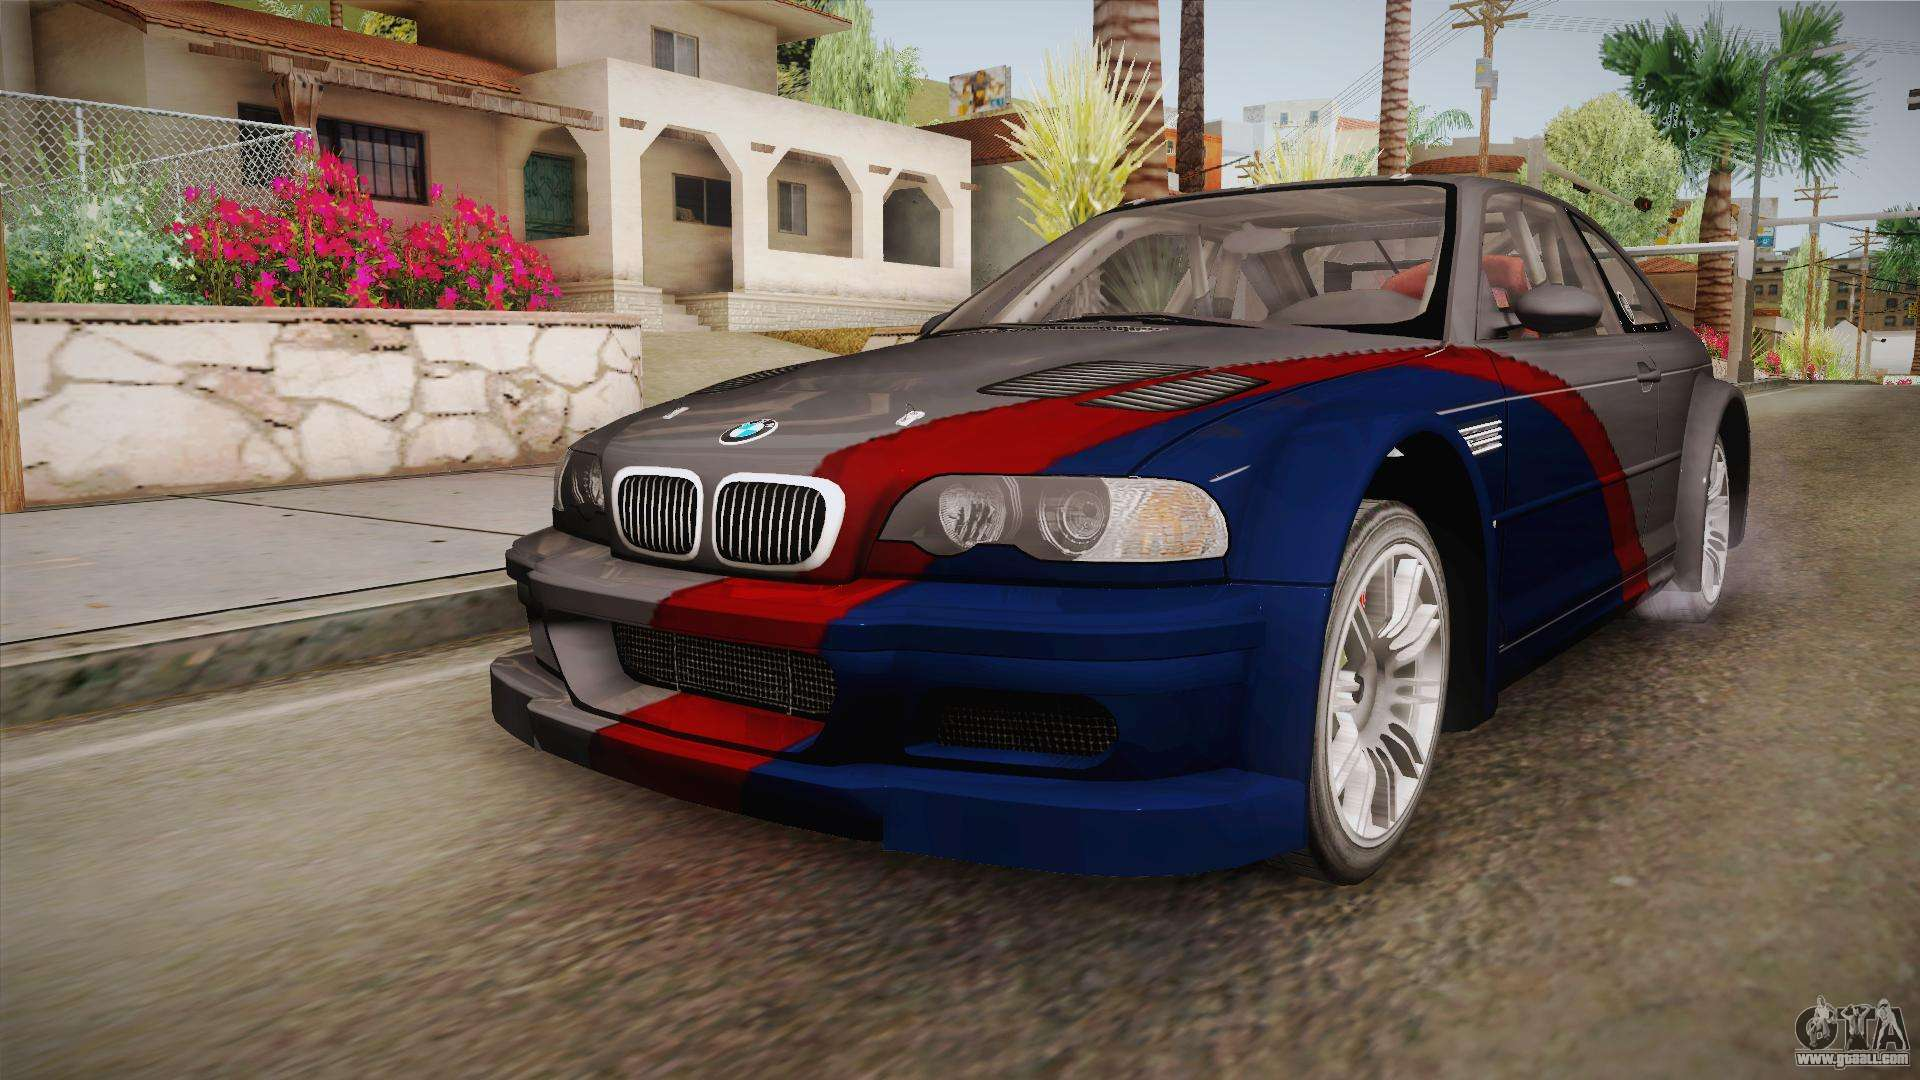 nfs mw bmw m3 gtr e46 hidden vinyl version for gta san andreas. Black Bedroom Furniture Sets. Home Design Ideas